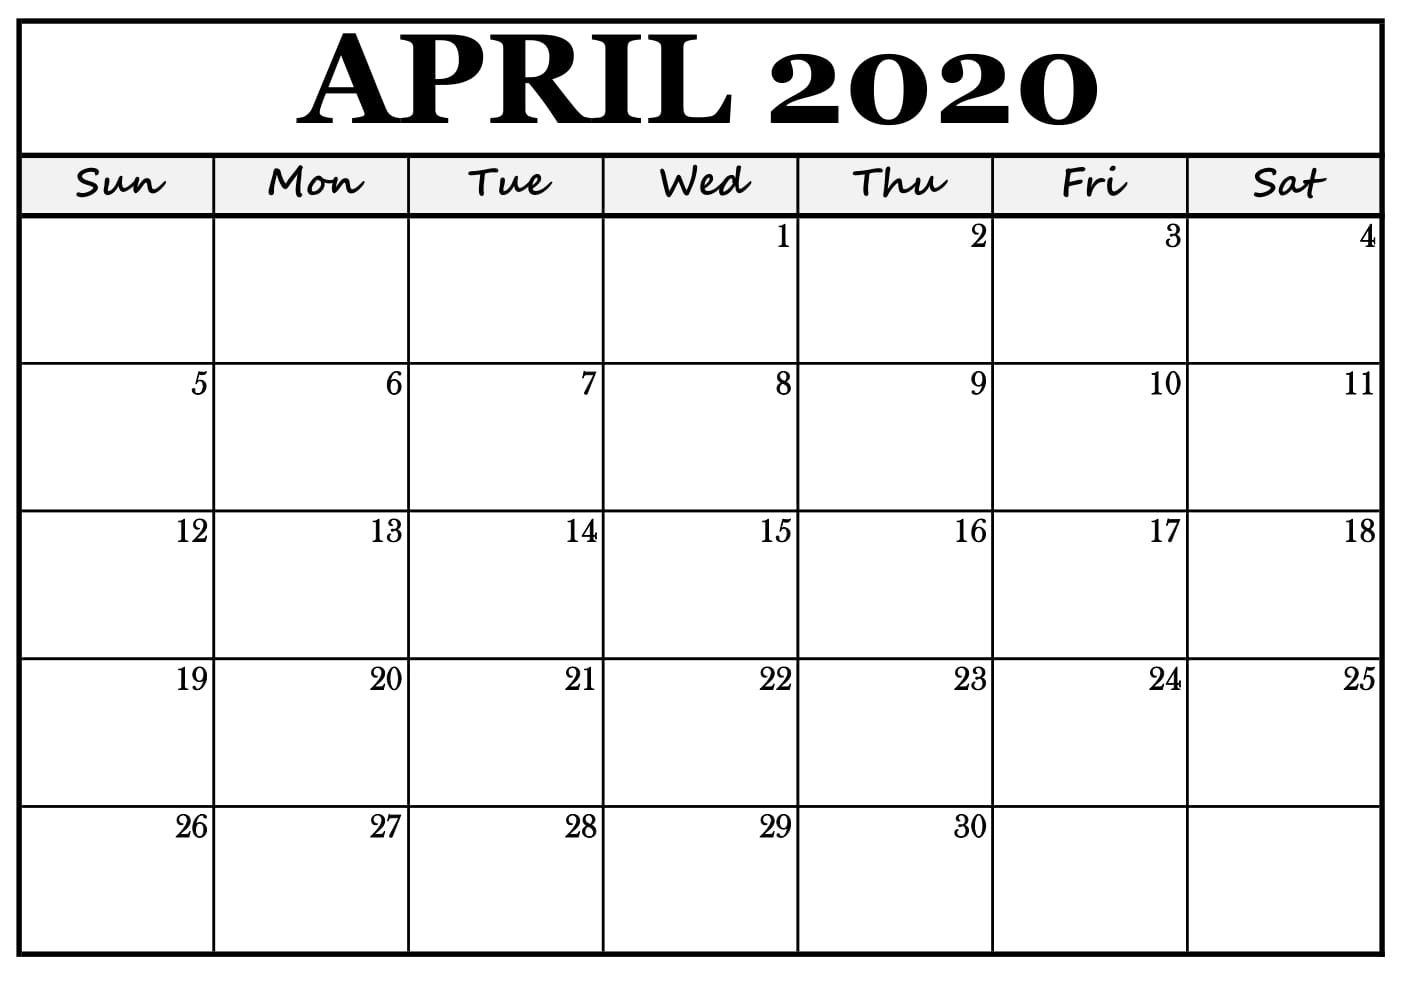 April 2020 Calendar Template With New Gradual Appointment In 2020